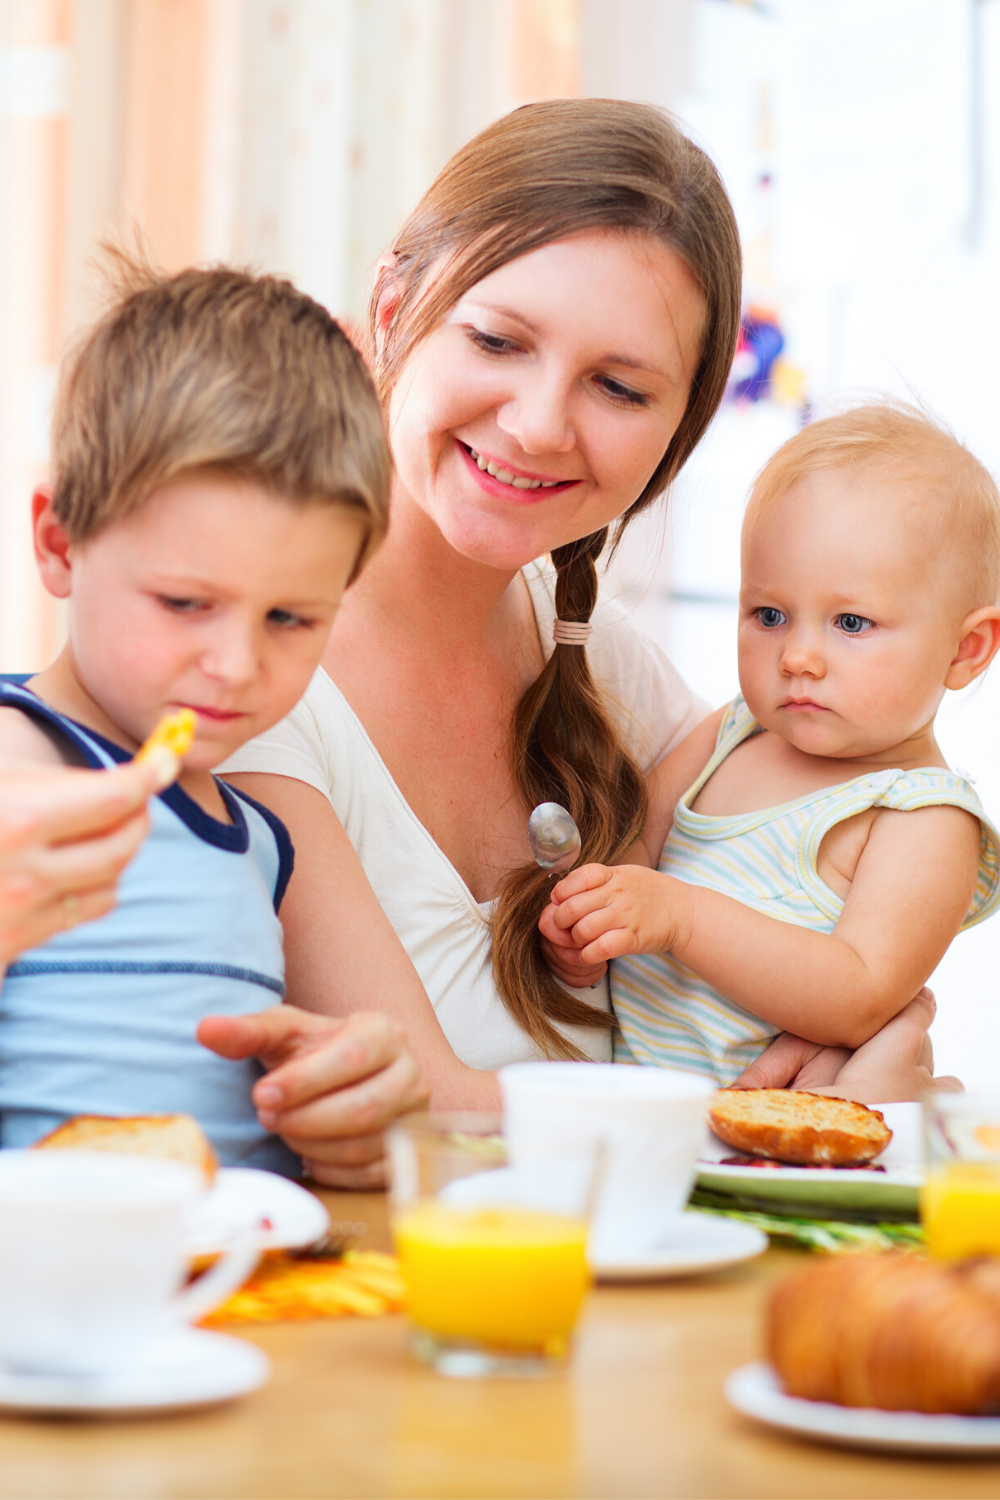 Secrets to Simplifying and Enjoying Family Mealtime with Little Ones